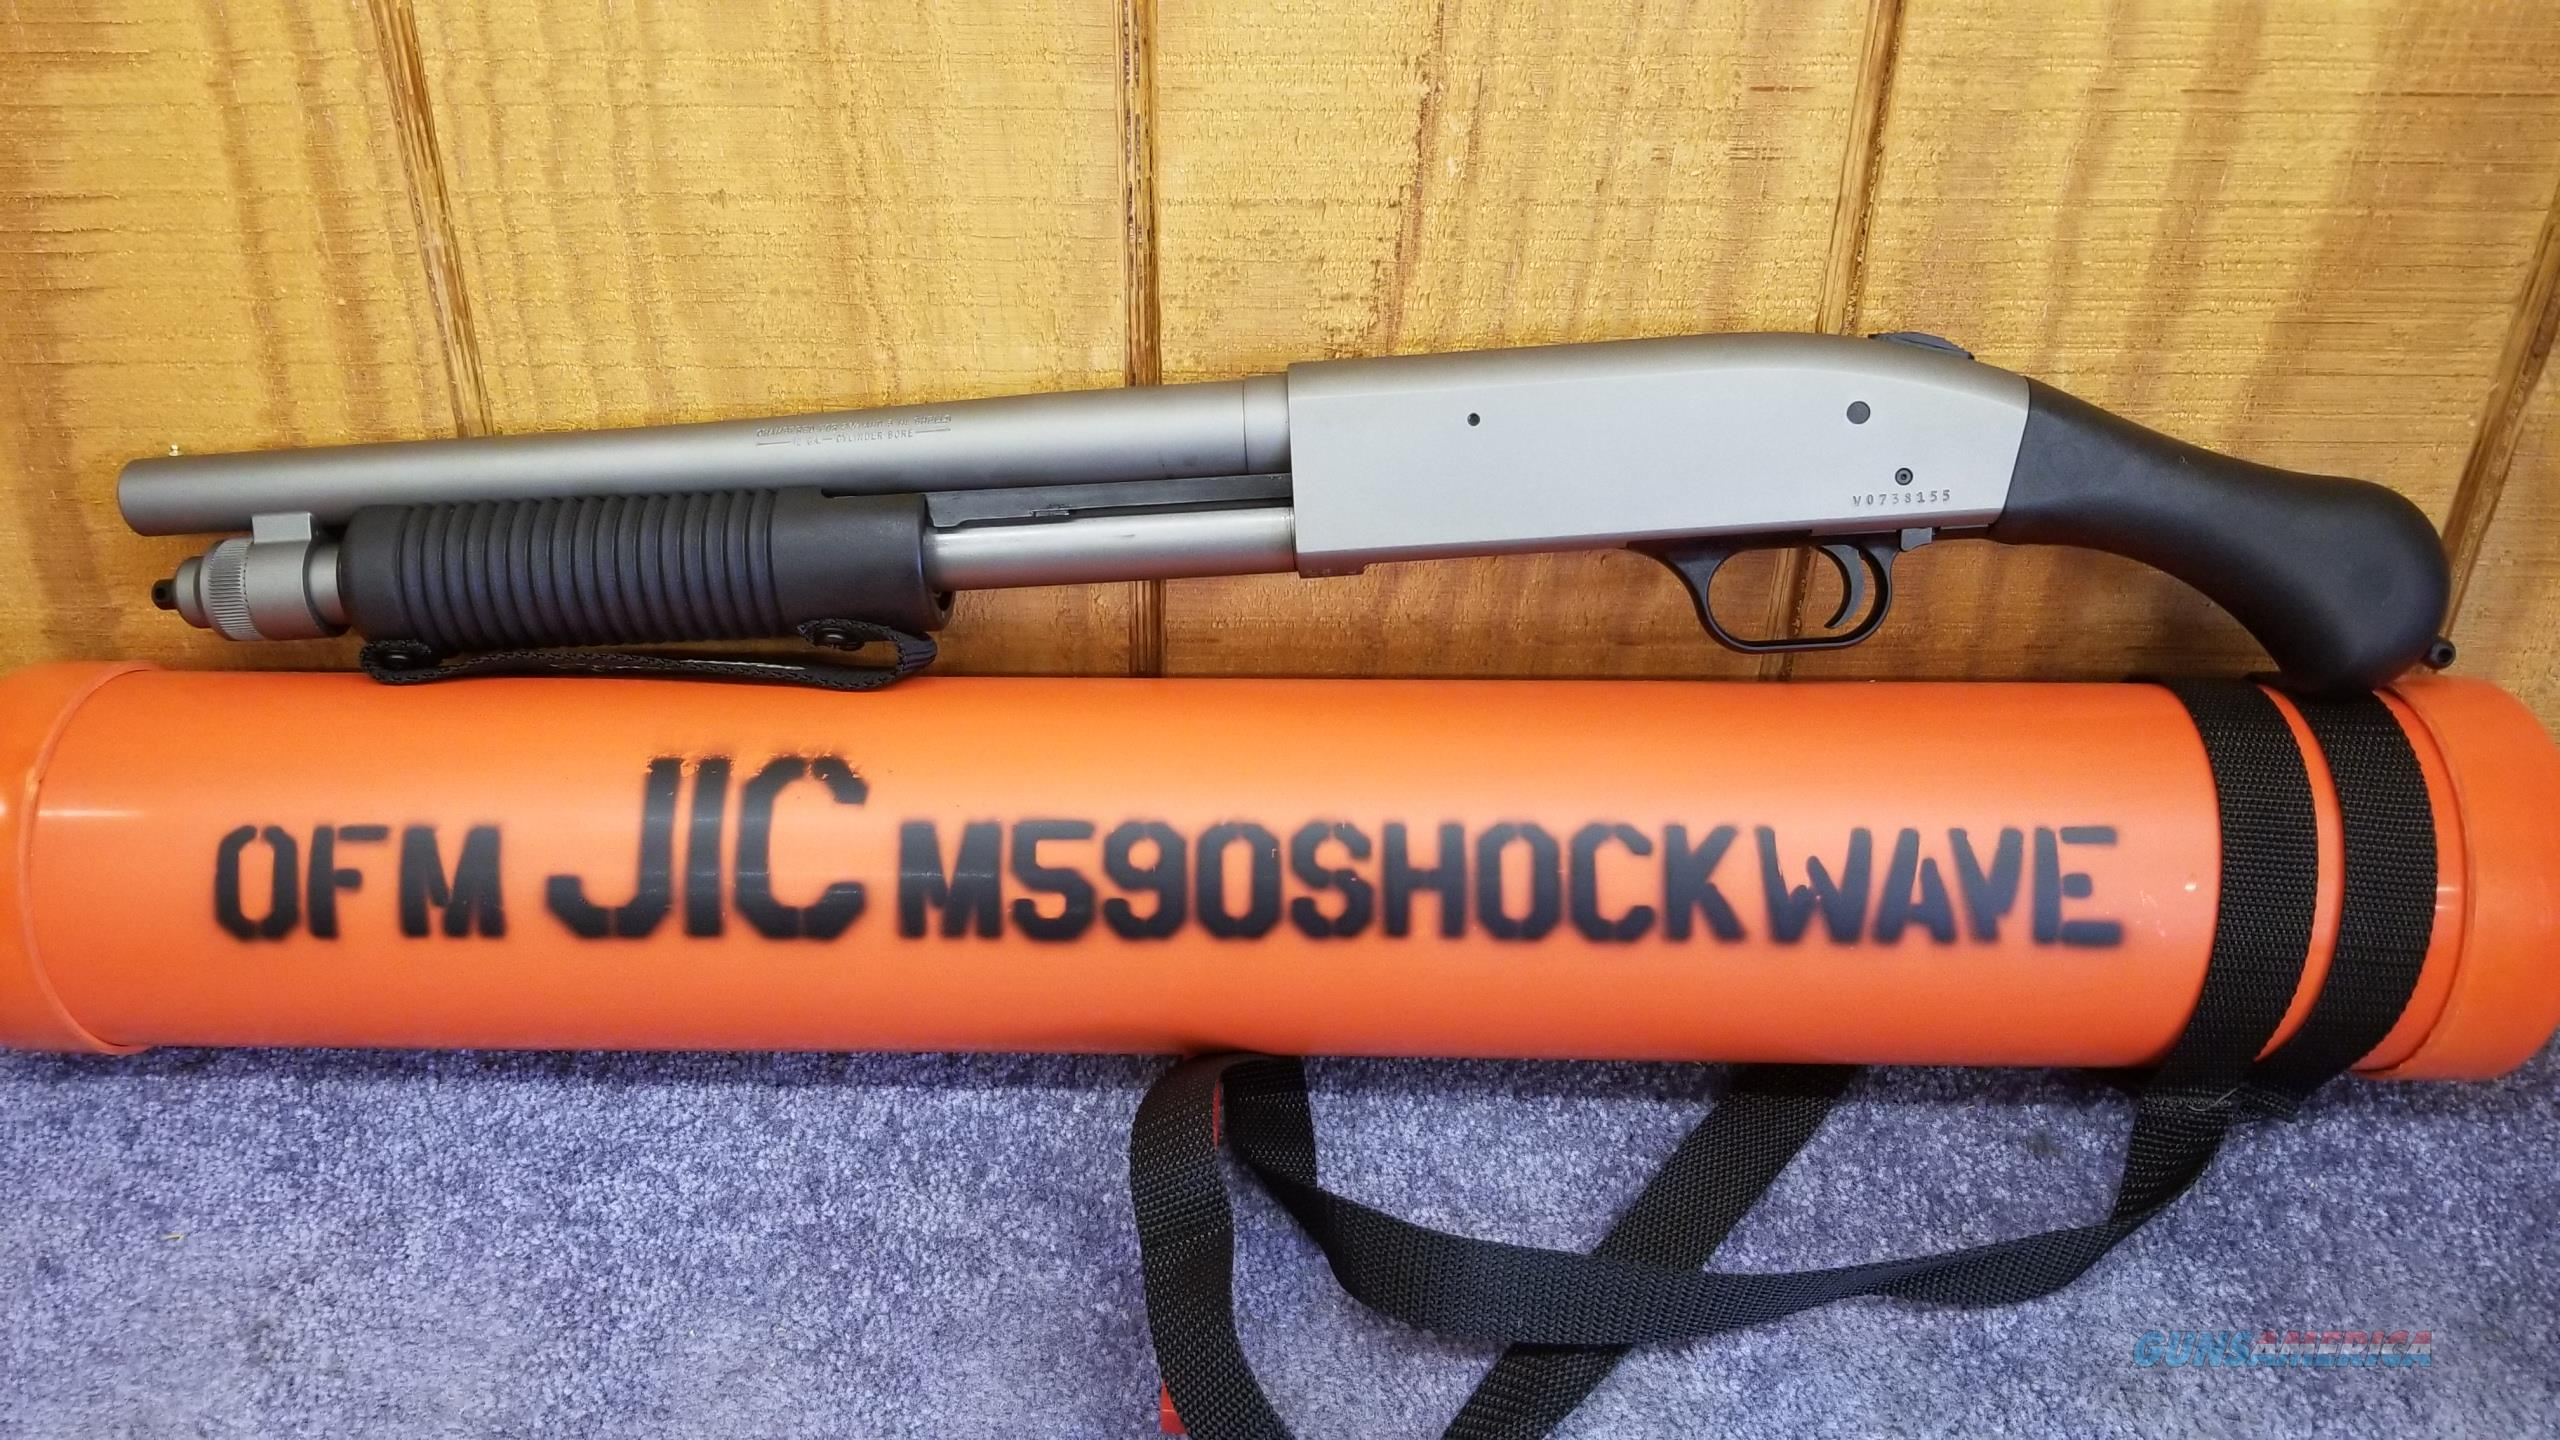 Mossberg 590 Shockwave 12 ga (Marinecote Finish)  Guns > Shotguns > Mossberg Shotguns > Pump > Tactical